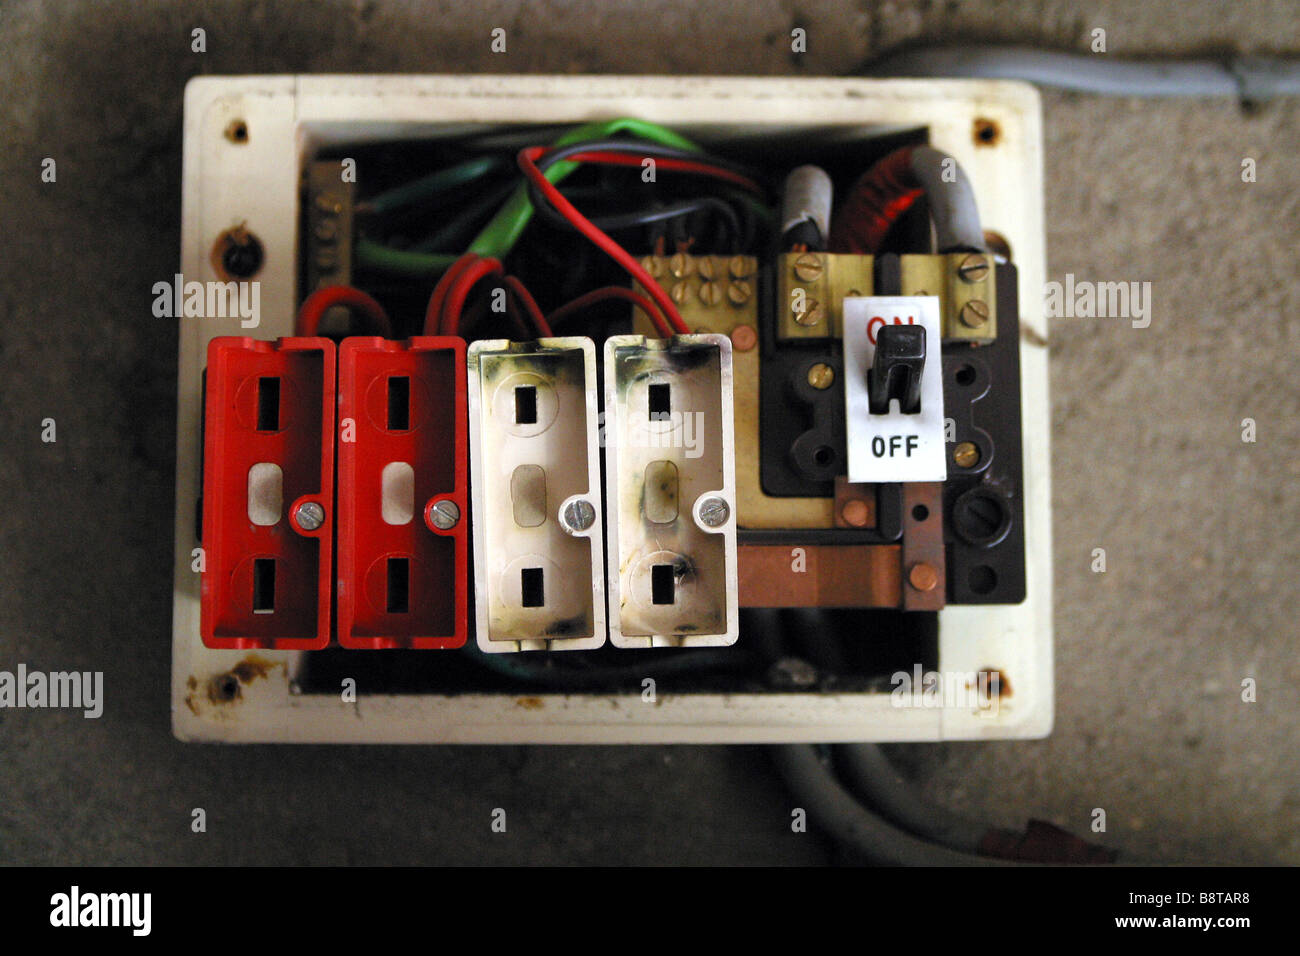 replacing old fuse box electrical wiring diagram old front door fuses for fuse box house simple [ 1300 x 956 Pixel ]